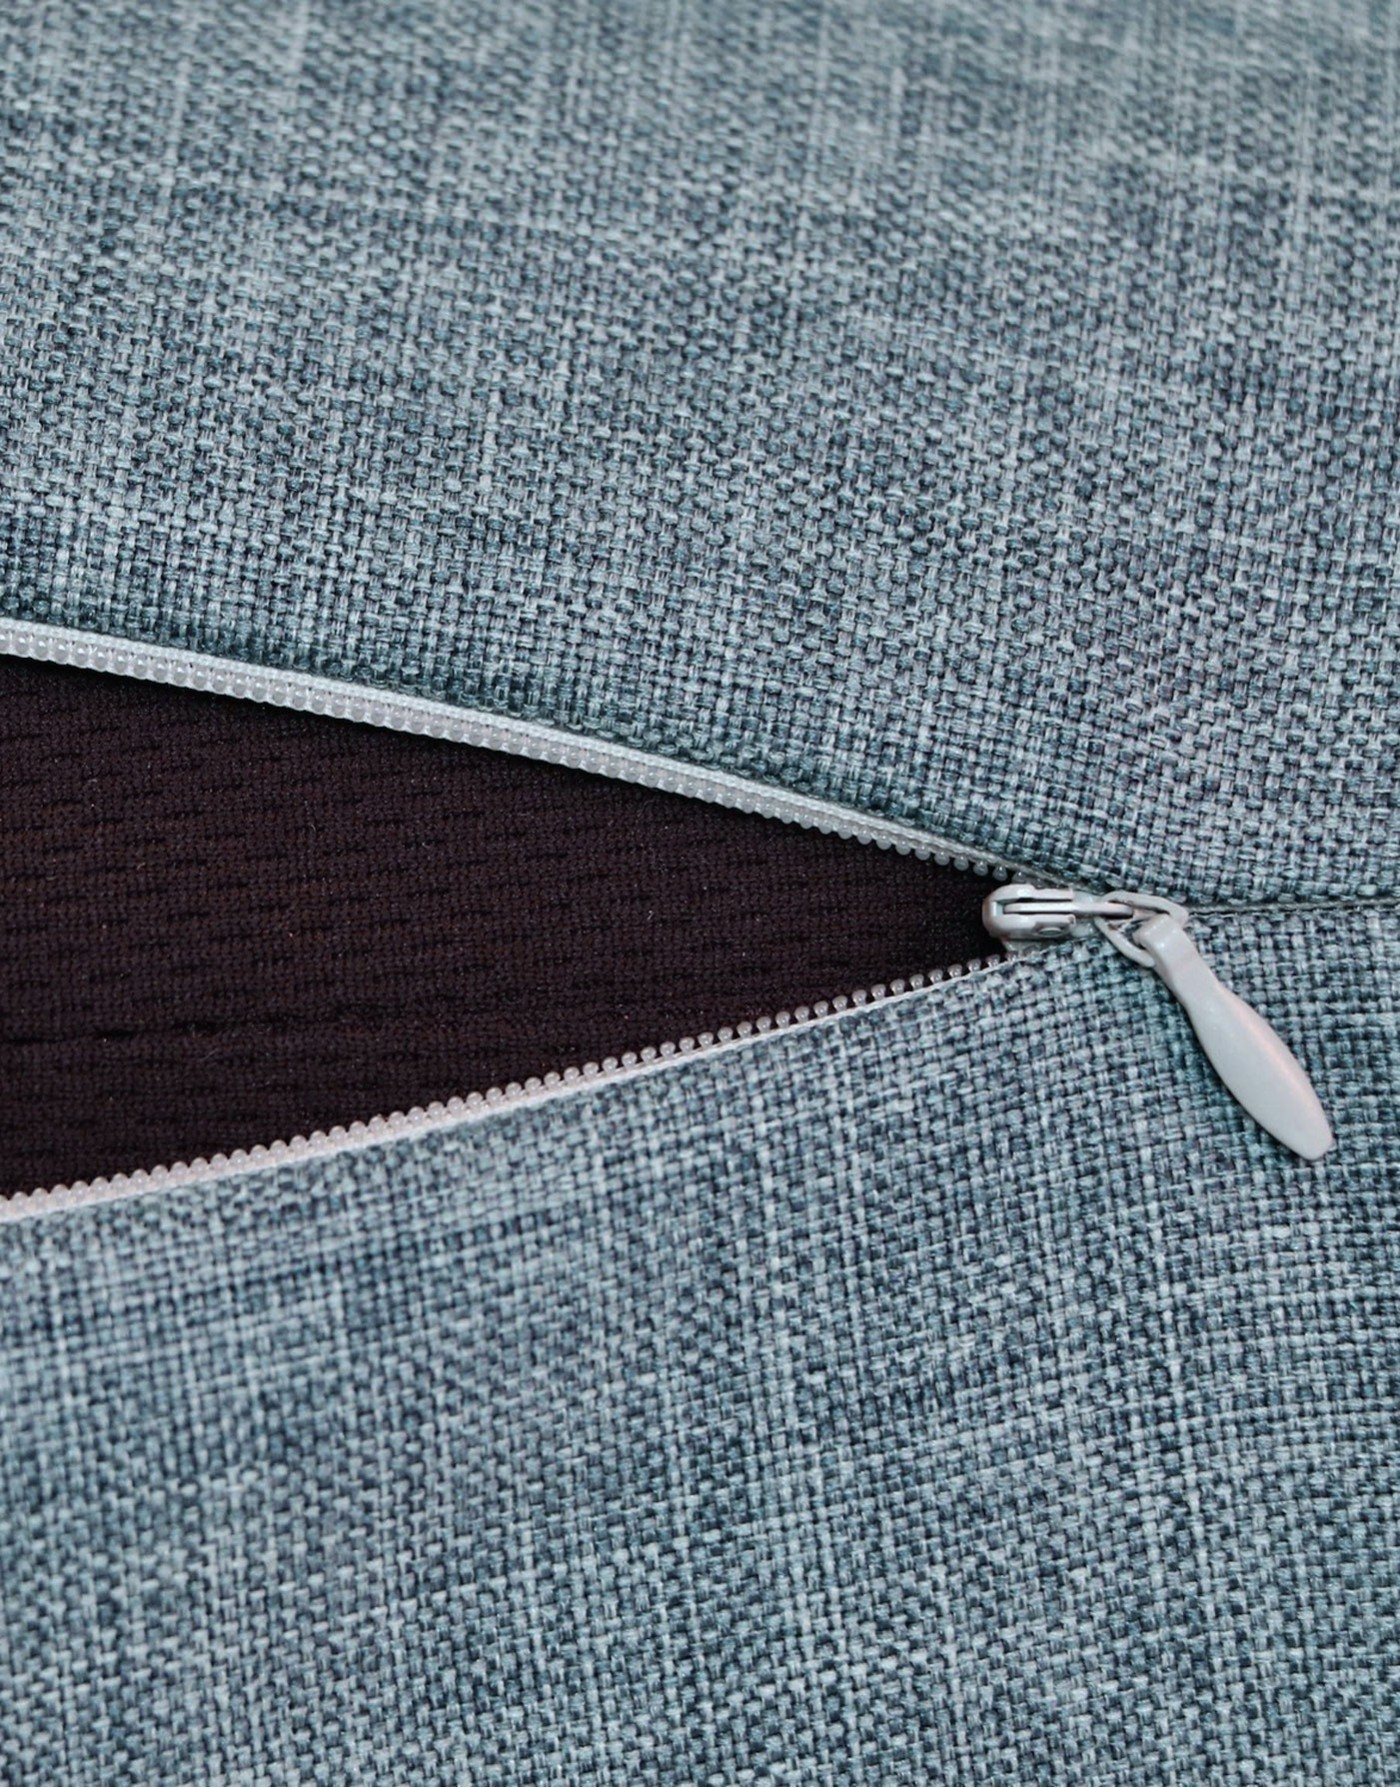 Replacement Outer Cover for Clébard cushion - Linen - Light Jeans